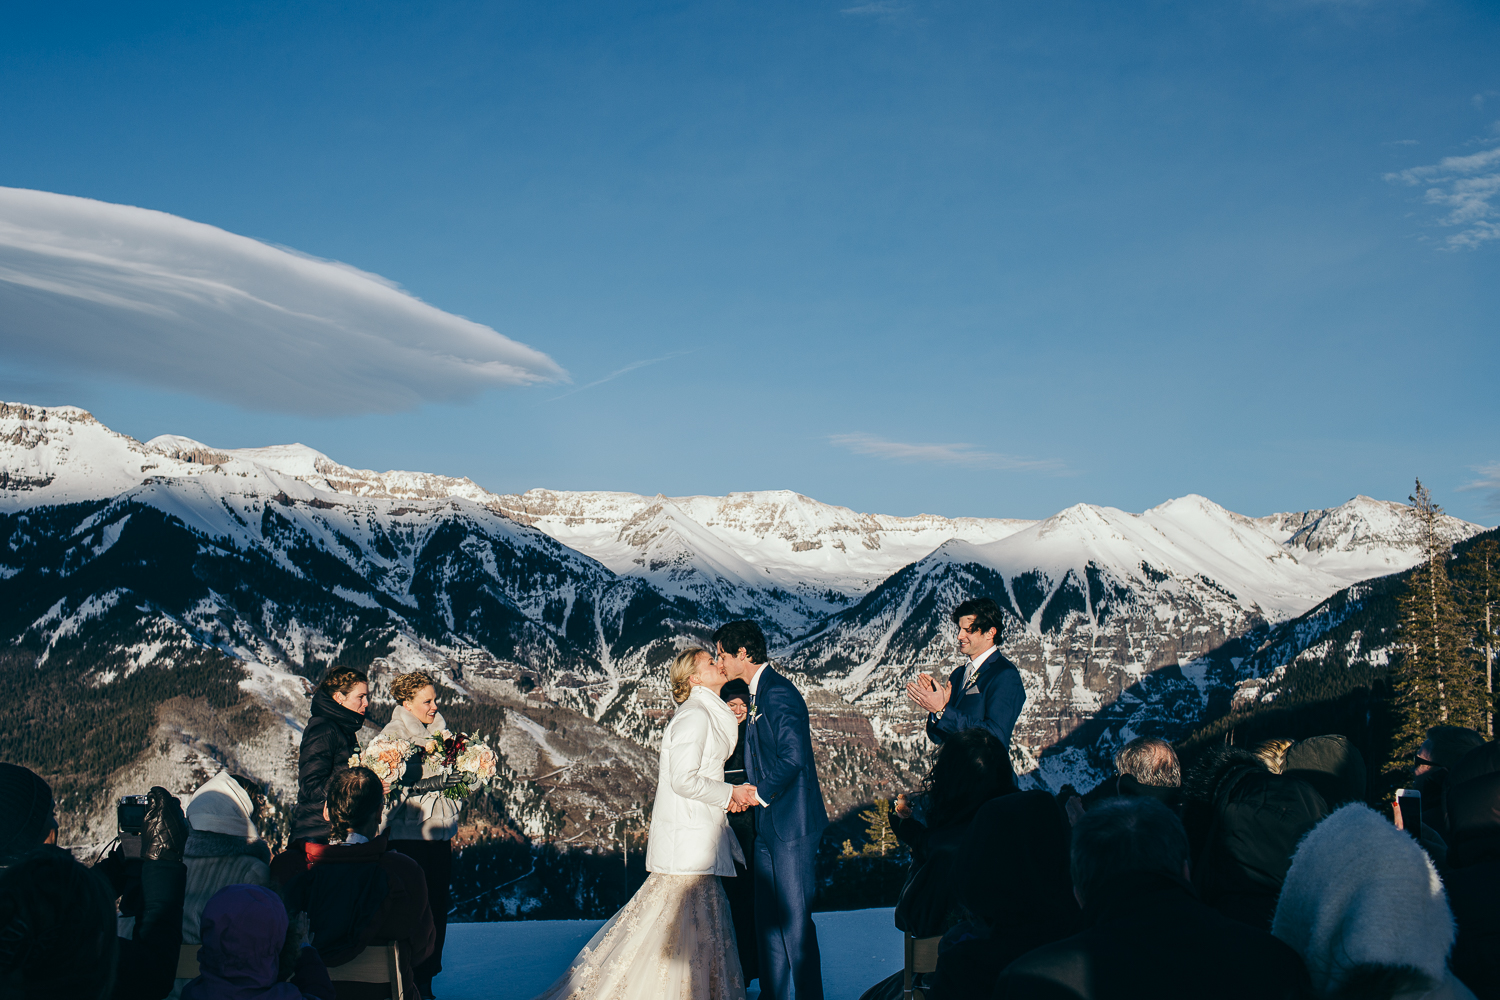 Abie Livesay Photography - San Sophia Wedding - Telluride Wedding Photographer - Dykema Braun Wedding-676.jpg